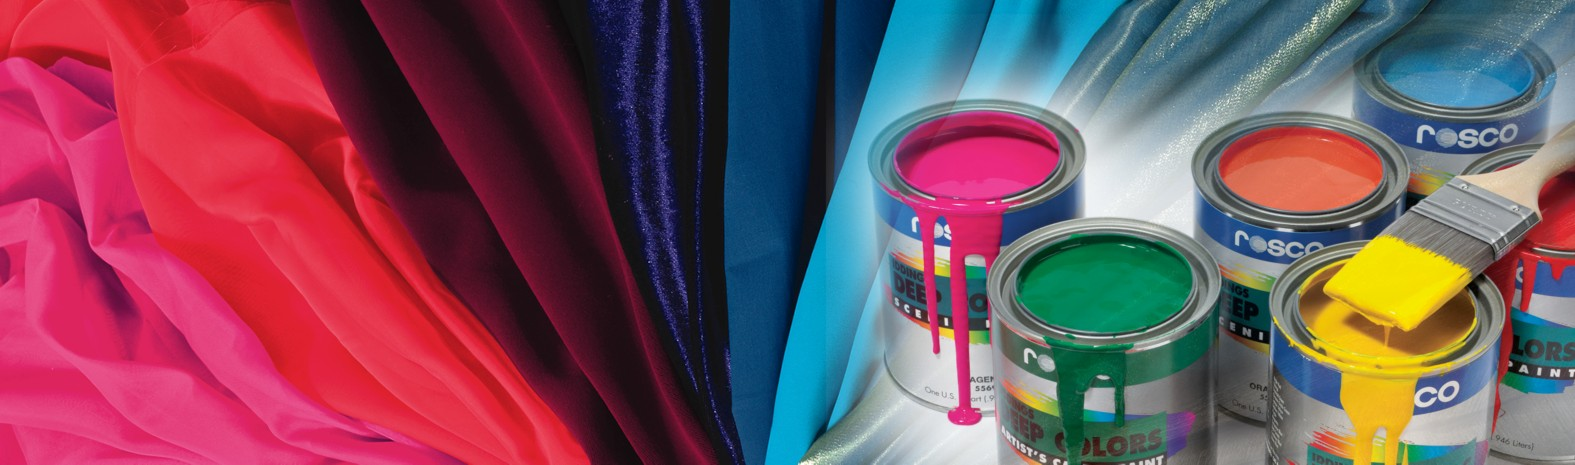 theatrical fabrics production hardware scenic supplies